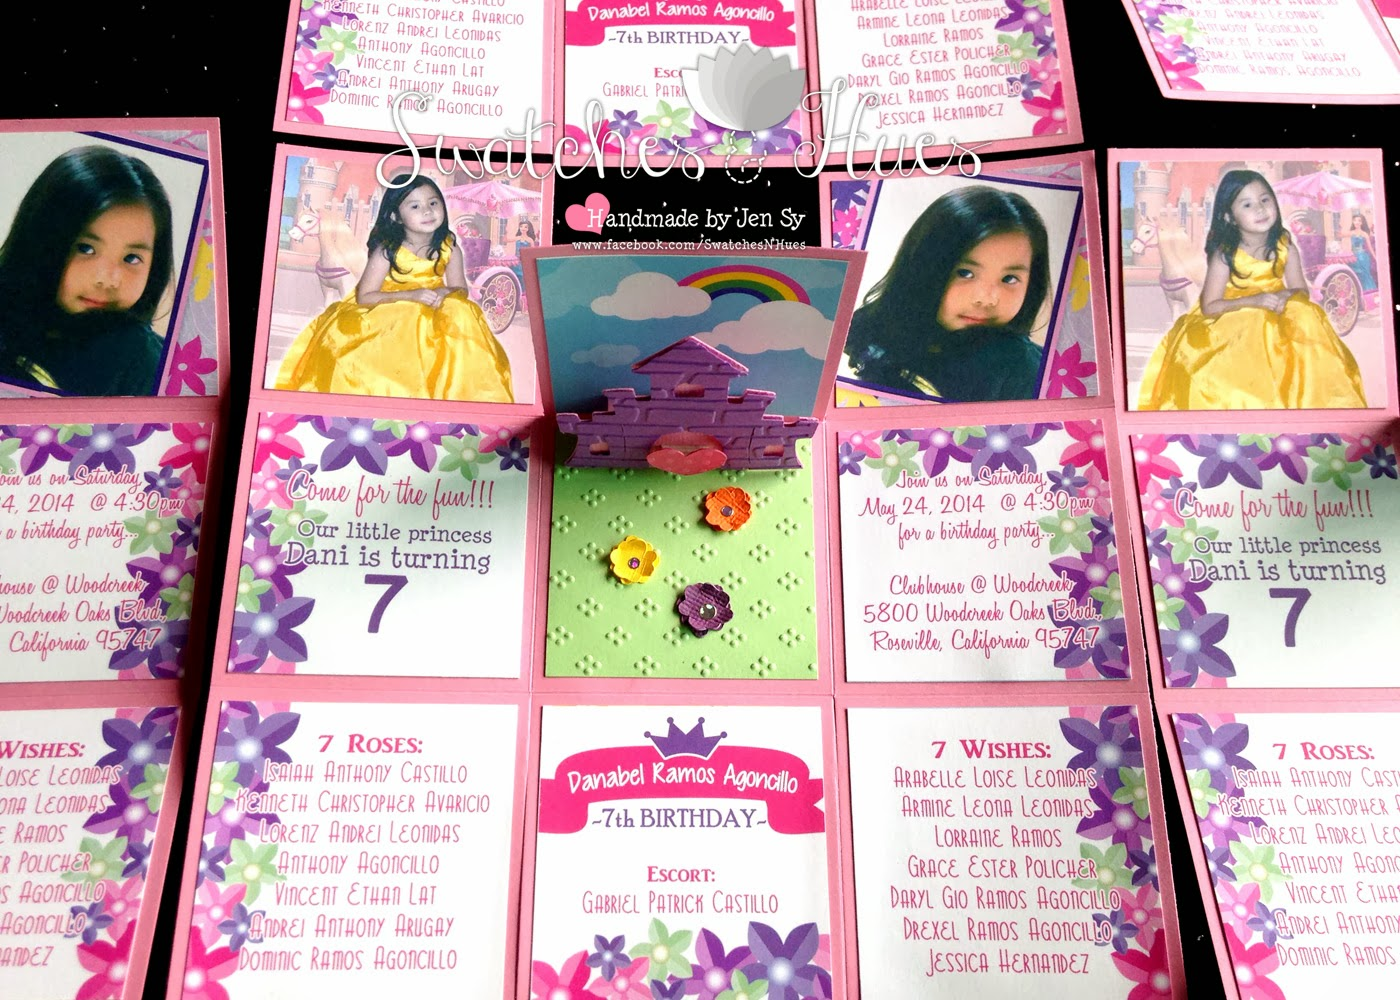 7th Birthday Invitation Princess Theme Photo 4E